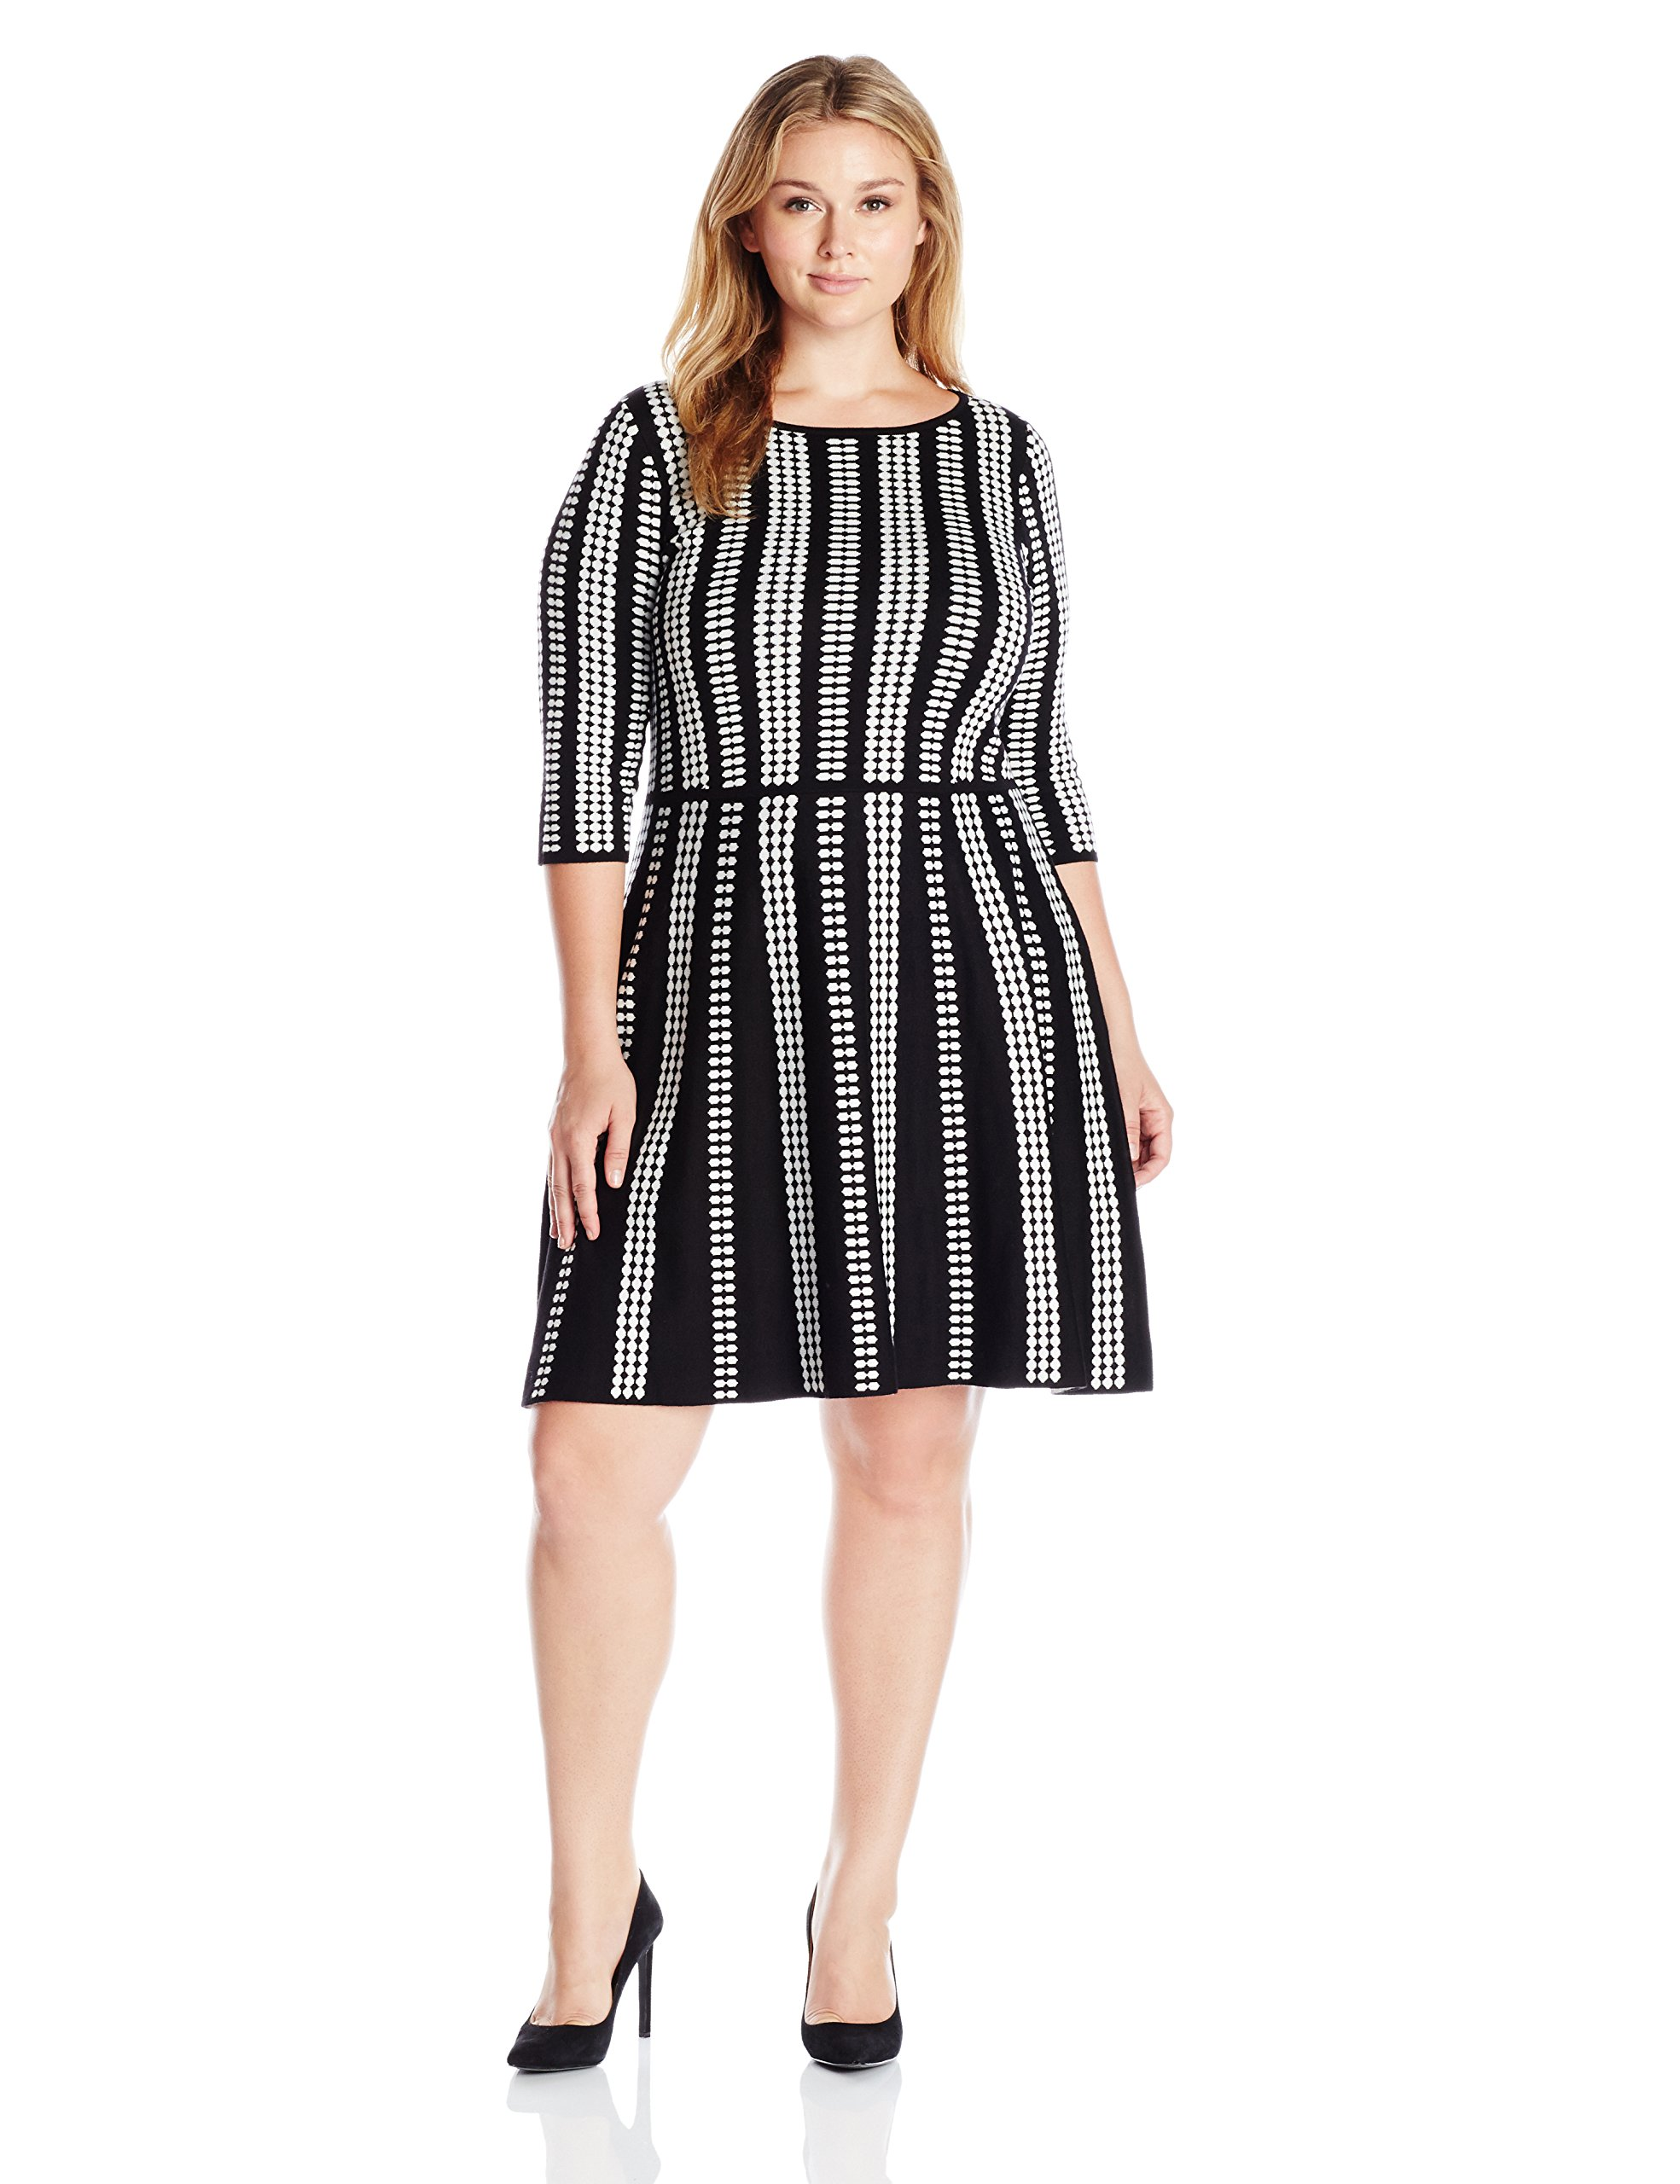 Gabby Skye Women's Plus Size 3/4 Sleeve Scoop Neck Sweater Fit and Flare Dress, Black/Ivory, 1X